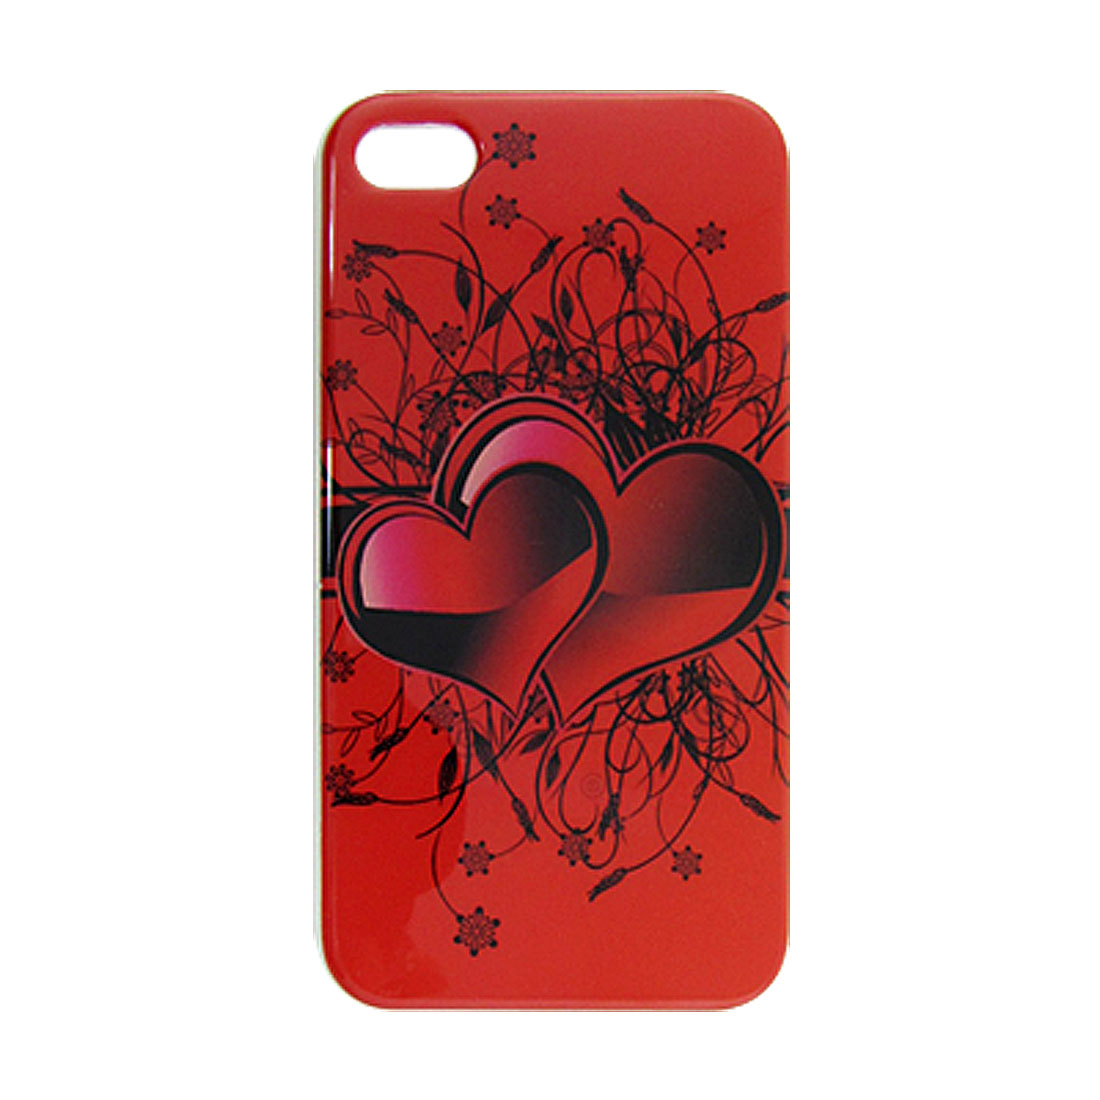 Red Hearts Floral Pattern IMD Plastic Back Hard Case for iPhone 4 4G 4S